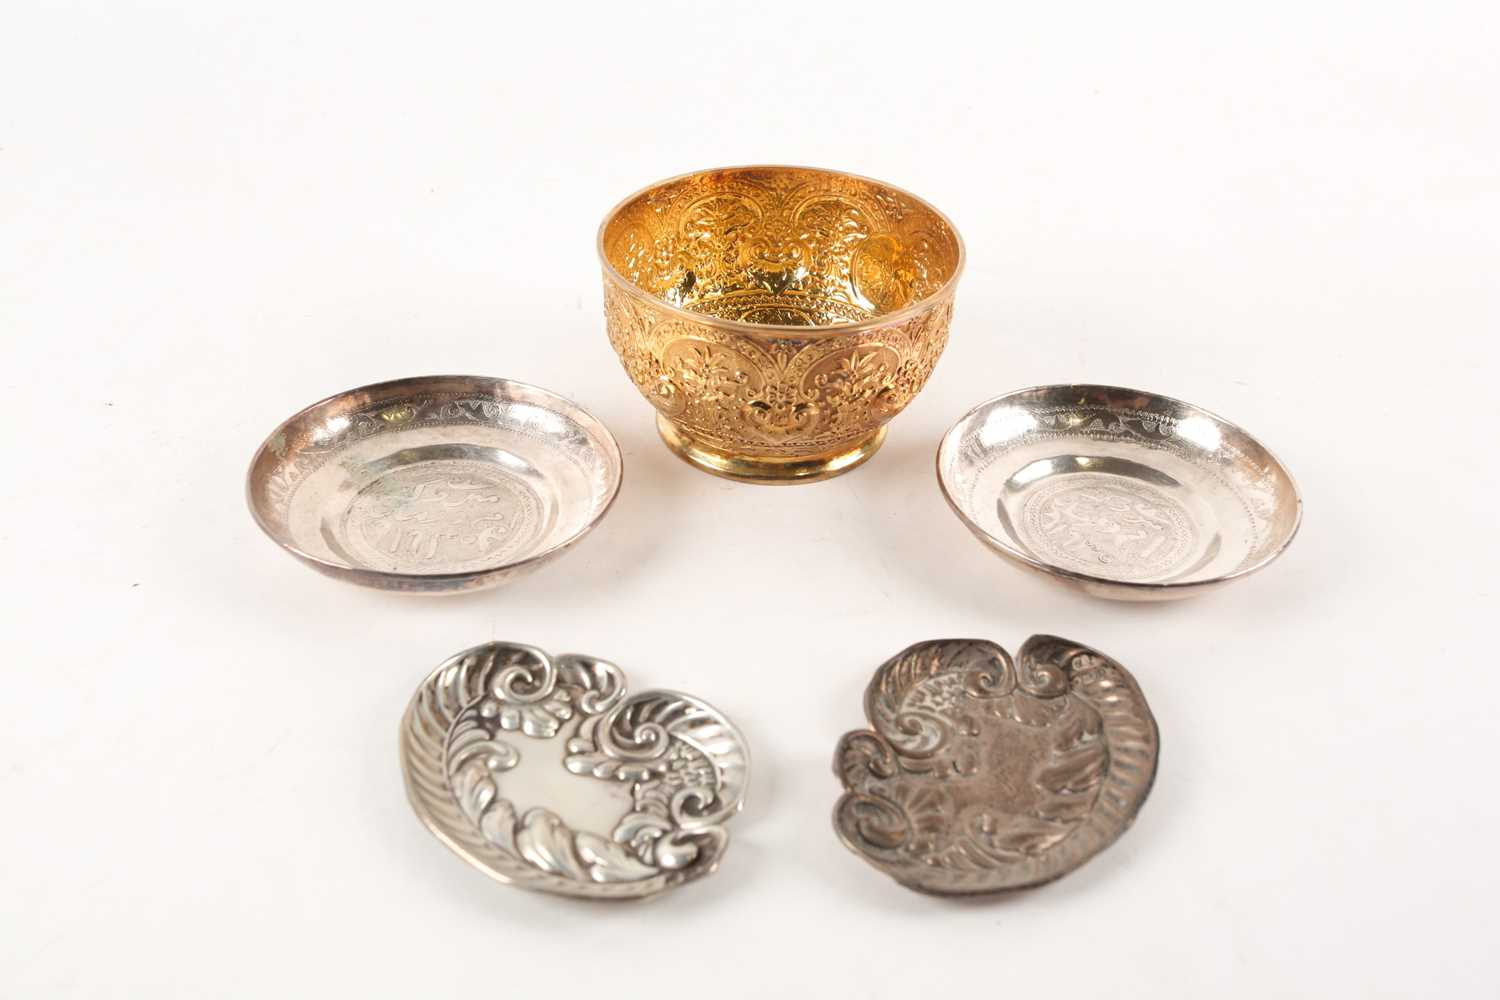 A Victorian silver gilt bowl, London 1880 by Holland, Son & Slater, with heavily embossed foliate